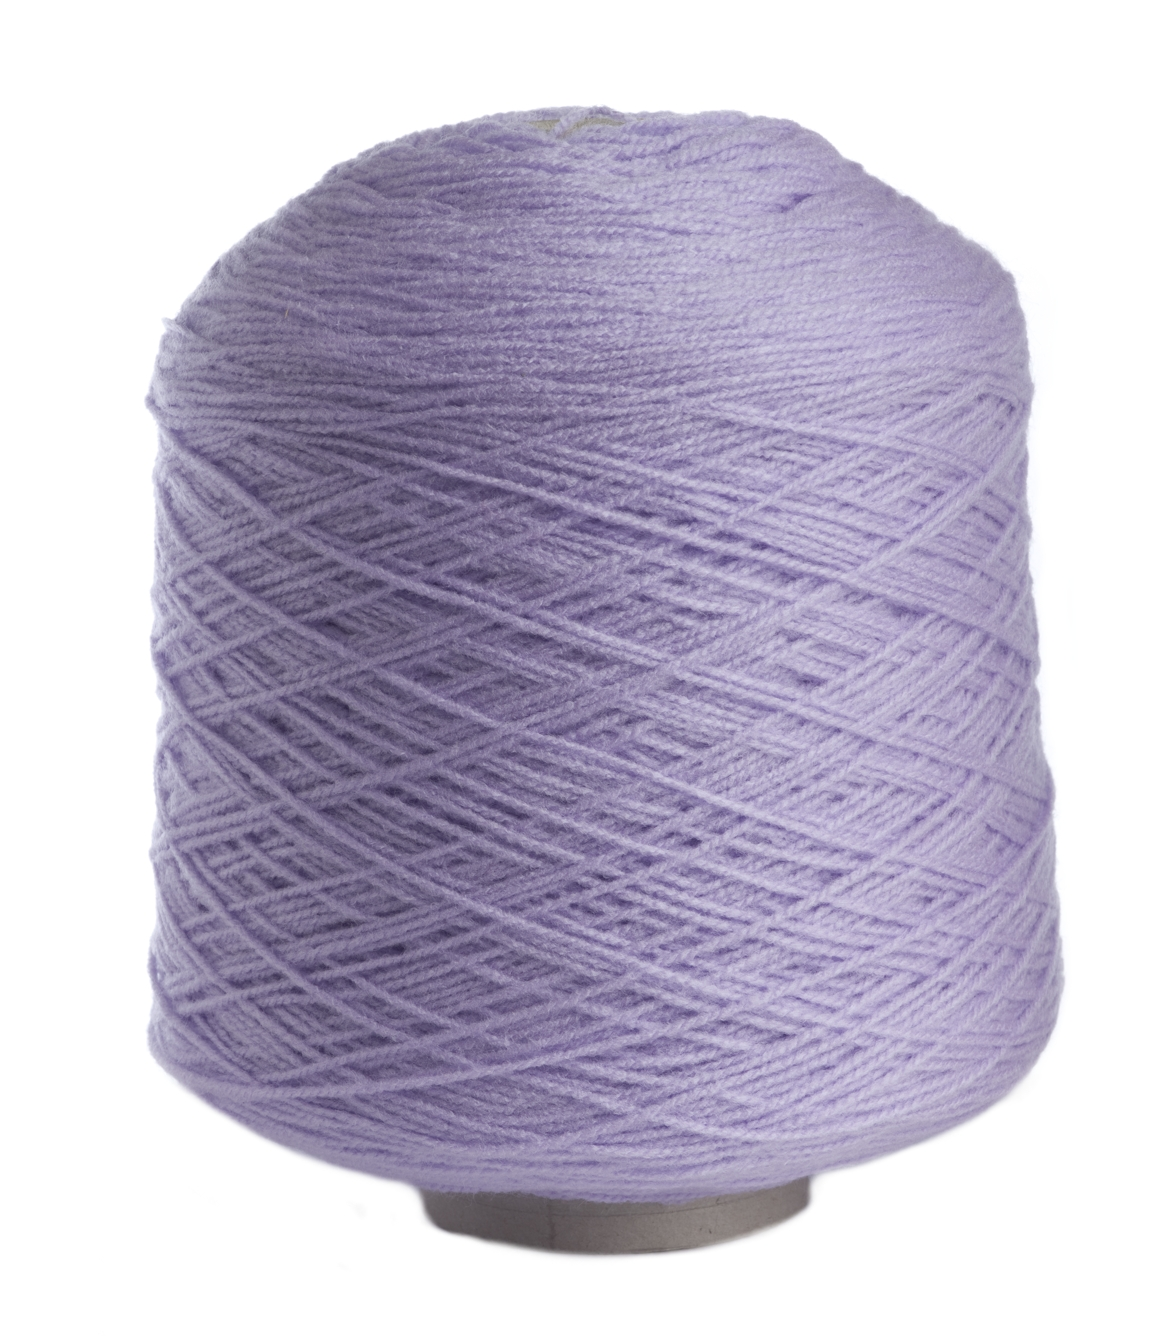 ... Cone 4Ply Knitting Yarn 100% Acrylic Craft Wool Hand or Machine eBay